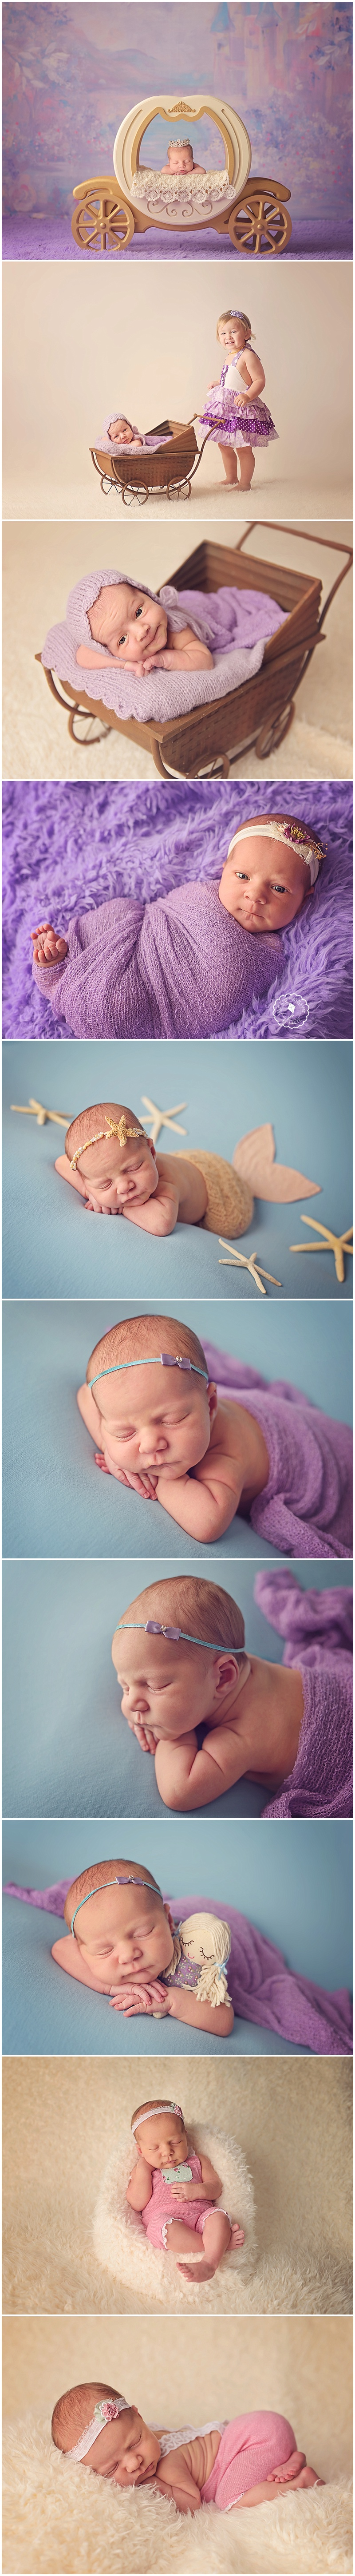 Newborn Photographer in Boca Raton, Delray, Deerfield, Parkland, Boynton, Wellington, Coral Springs, South Florida.